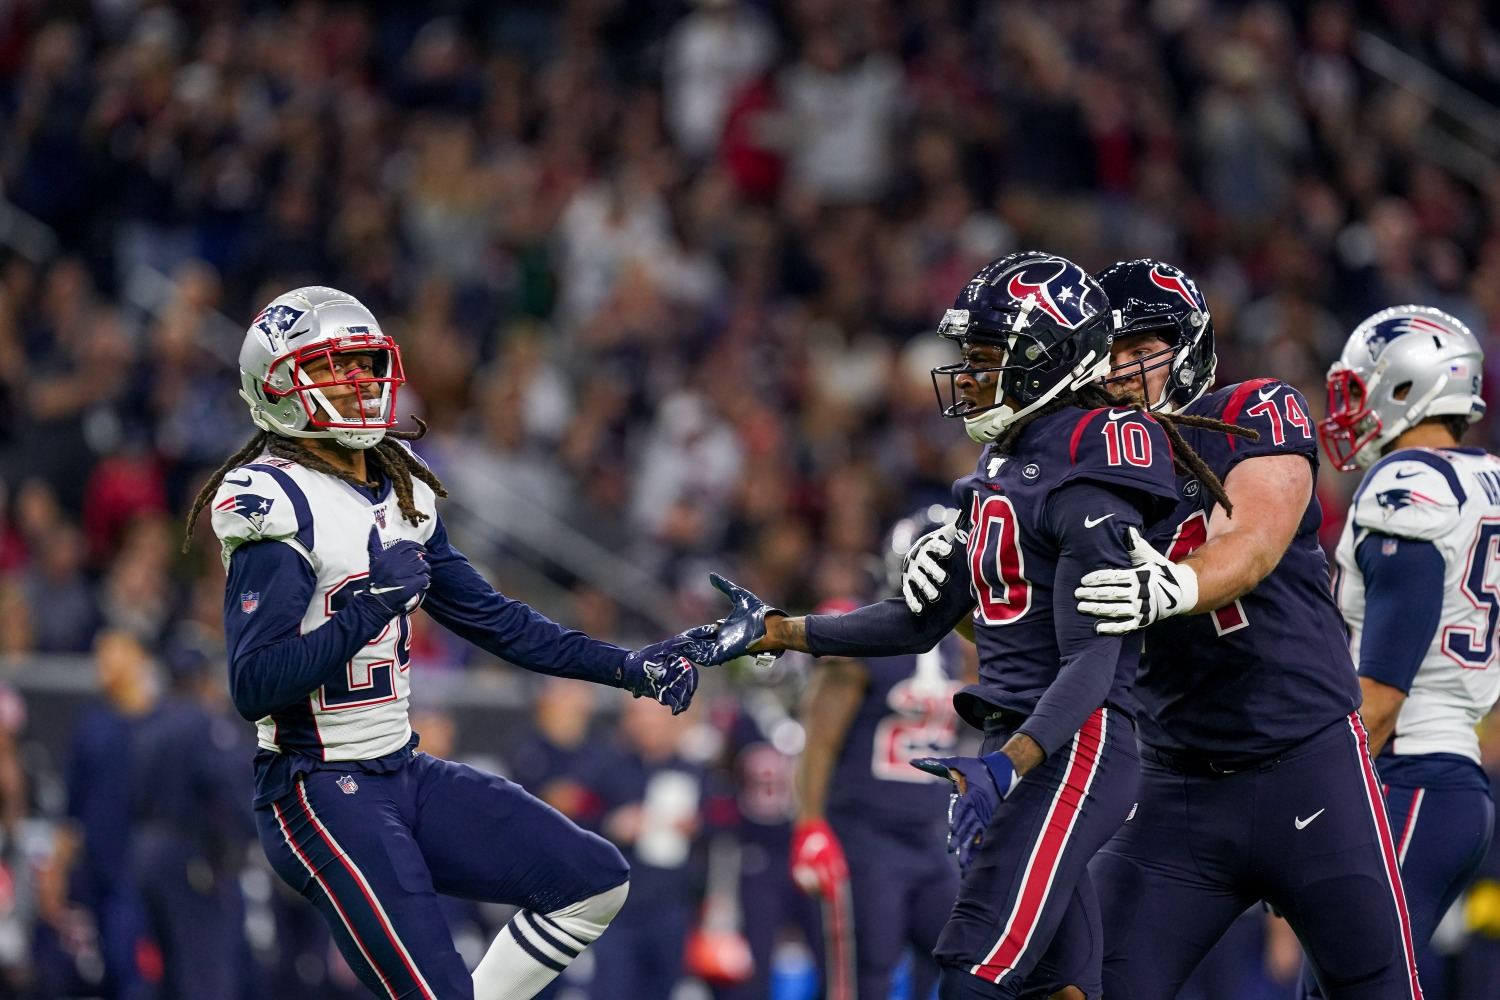 Stephon Gilmore and DeAndre Hopkins have a bitter rivalry.